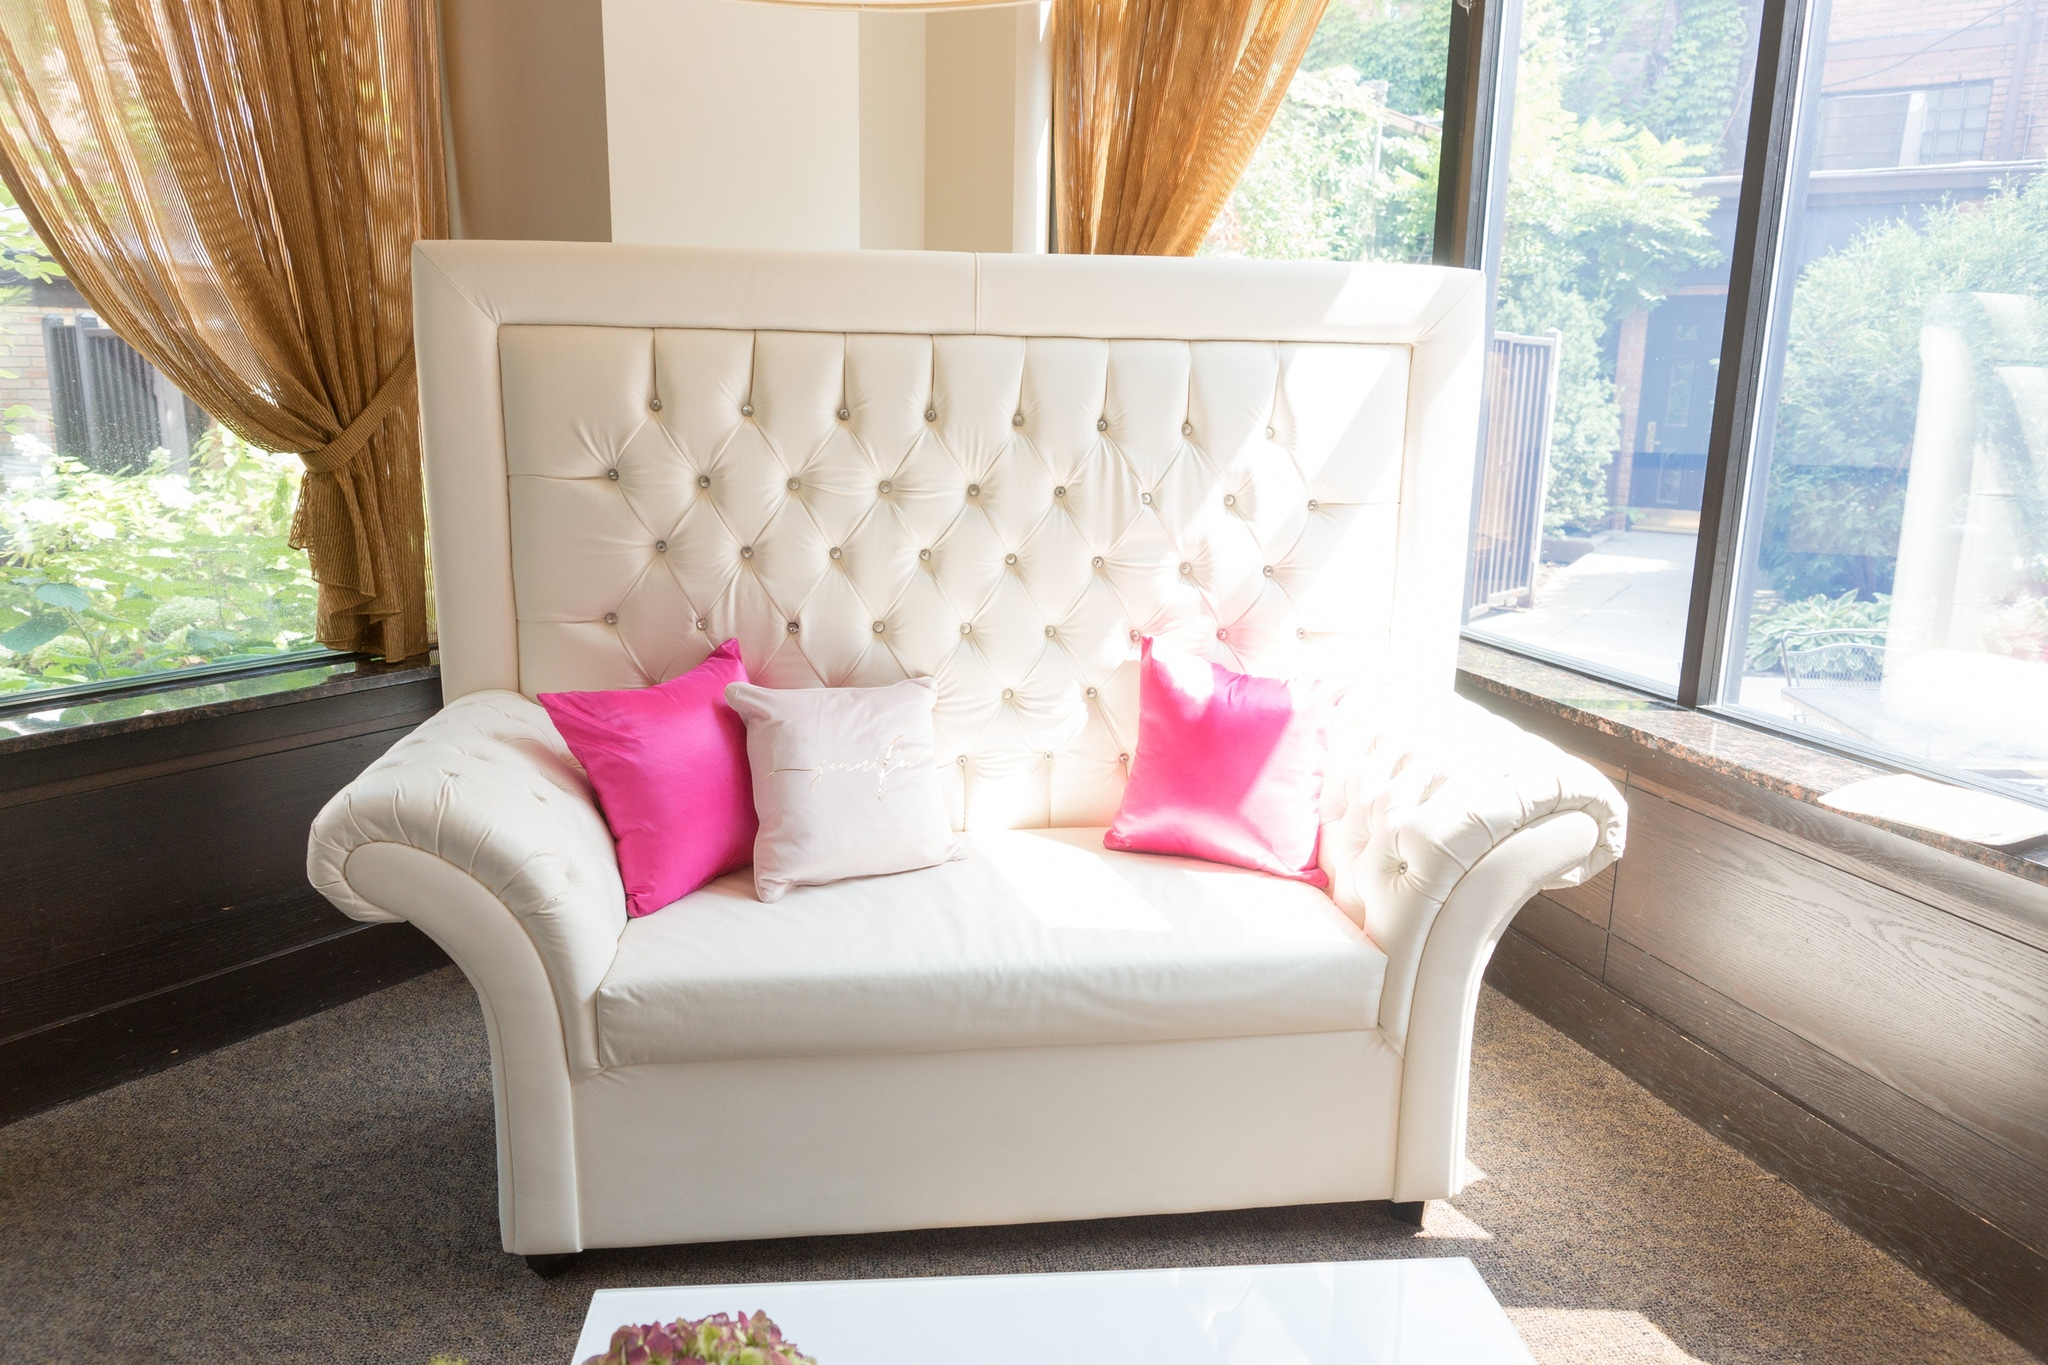 White chair with pink pillows